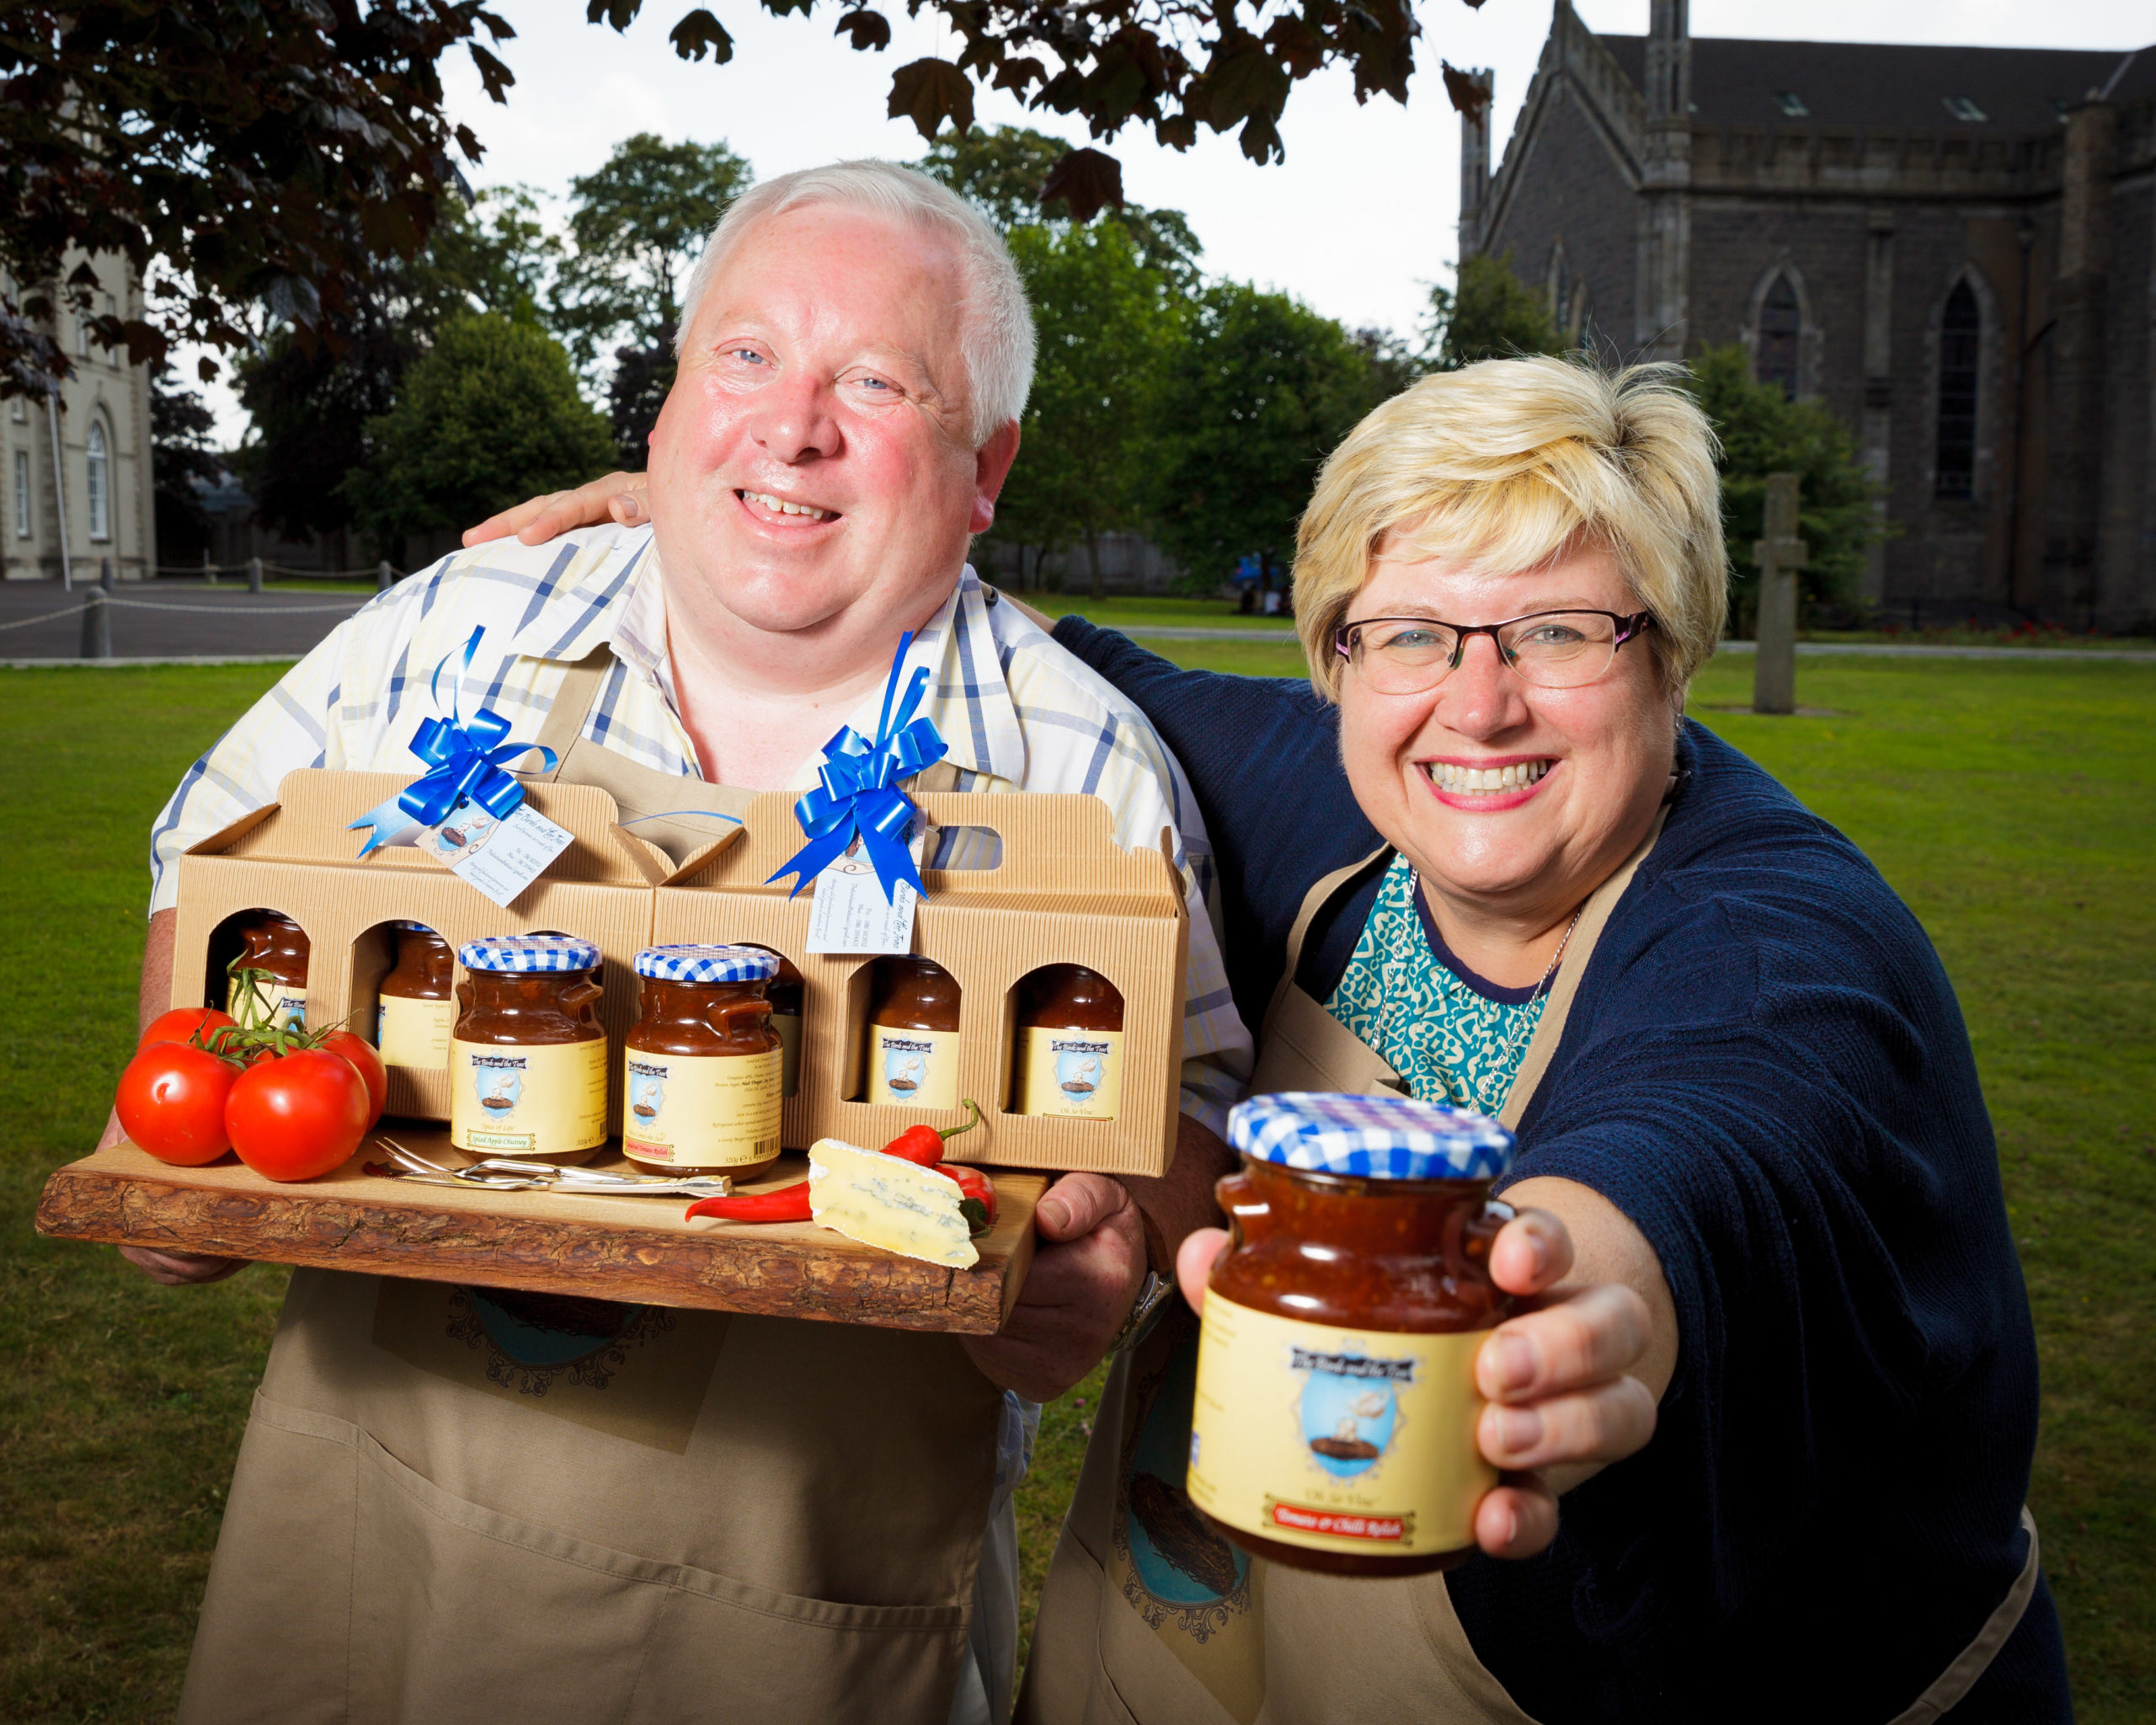 The Birds and The Teas will be in Supervalu on October 30 as part of Wicklow Naturally's October Feast